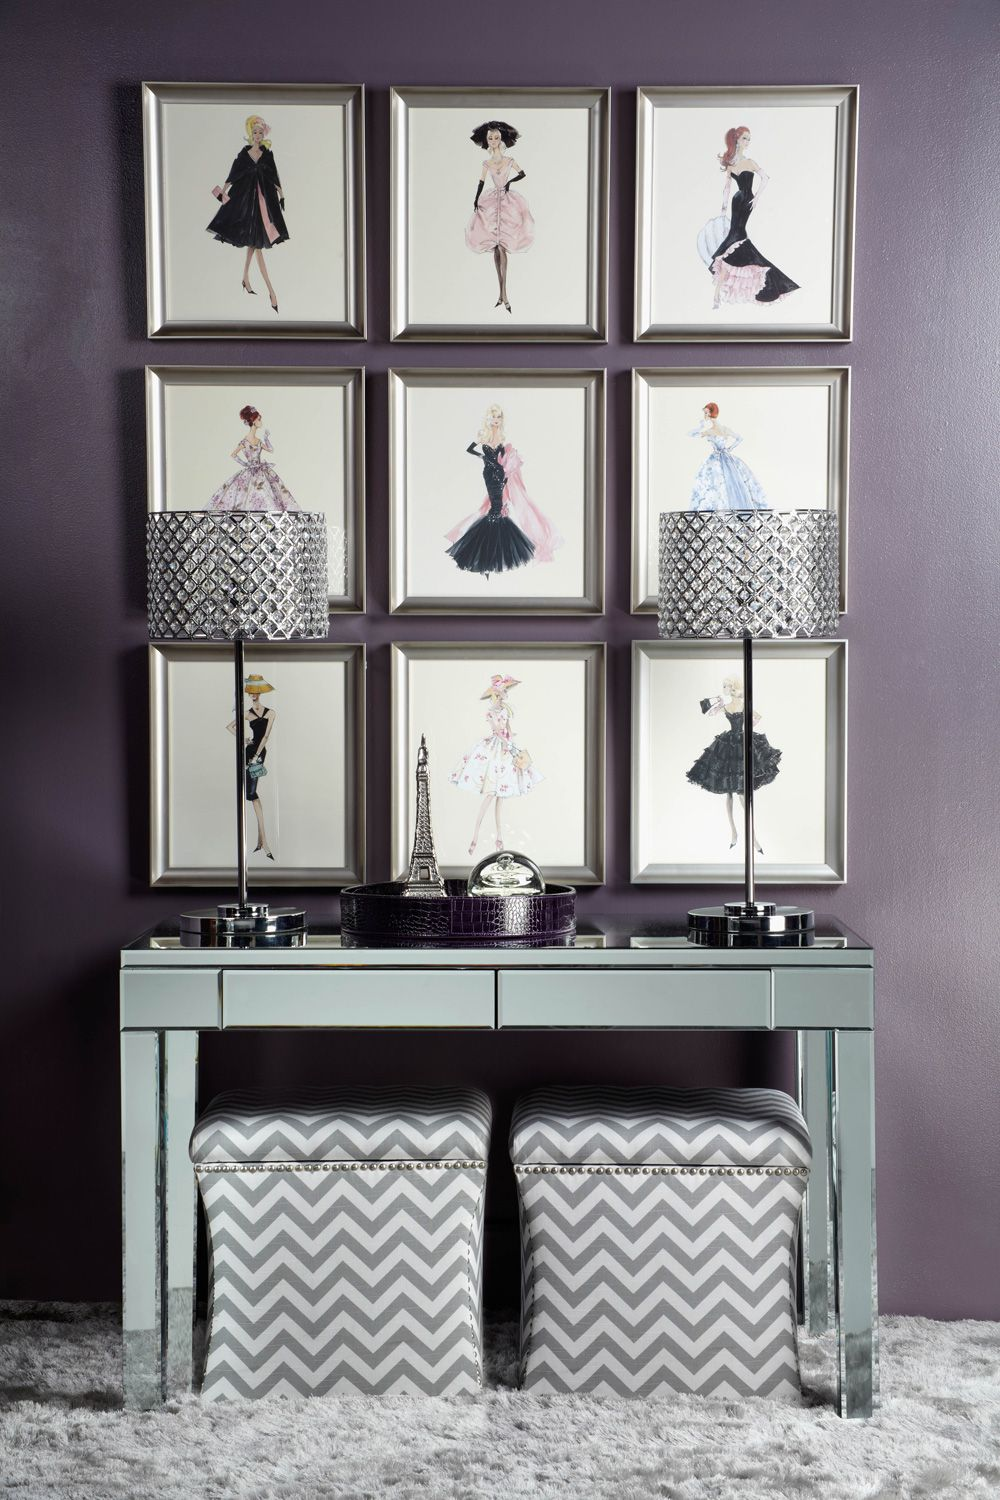 Fashion Walls With Barbie Sketches And Mirrored